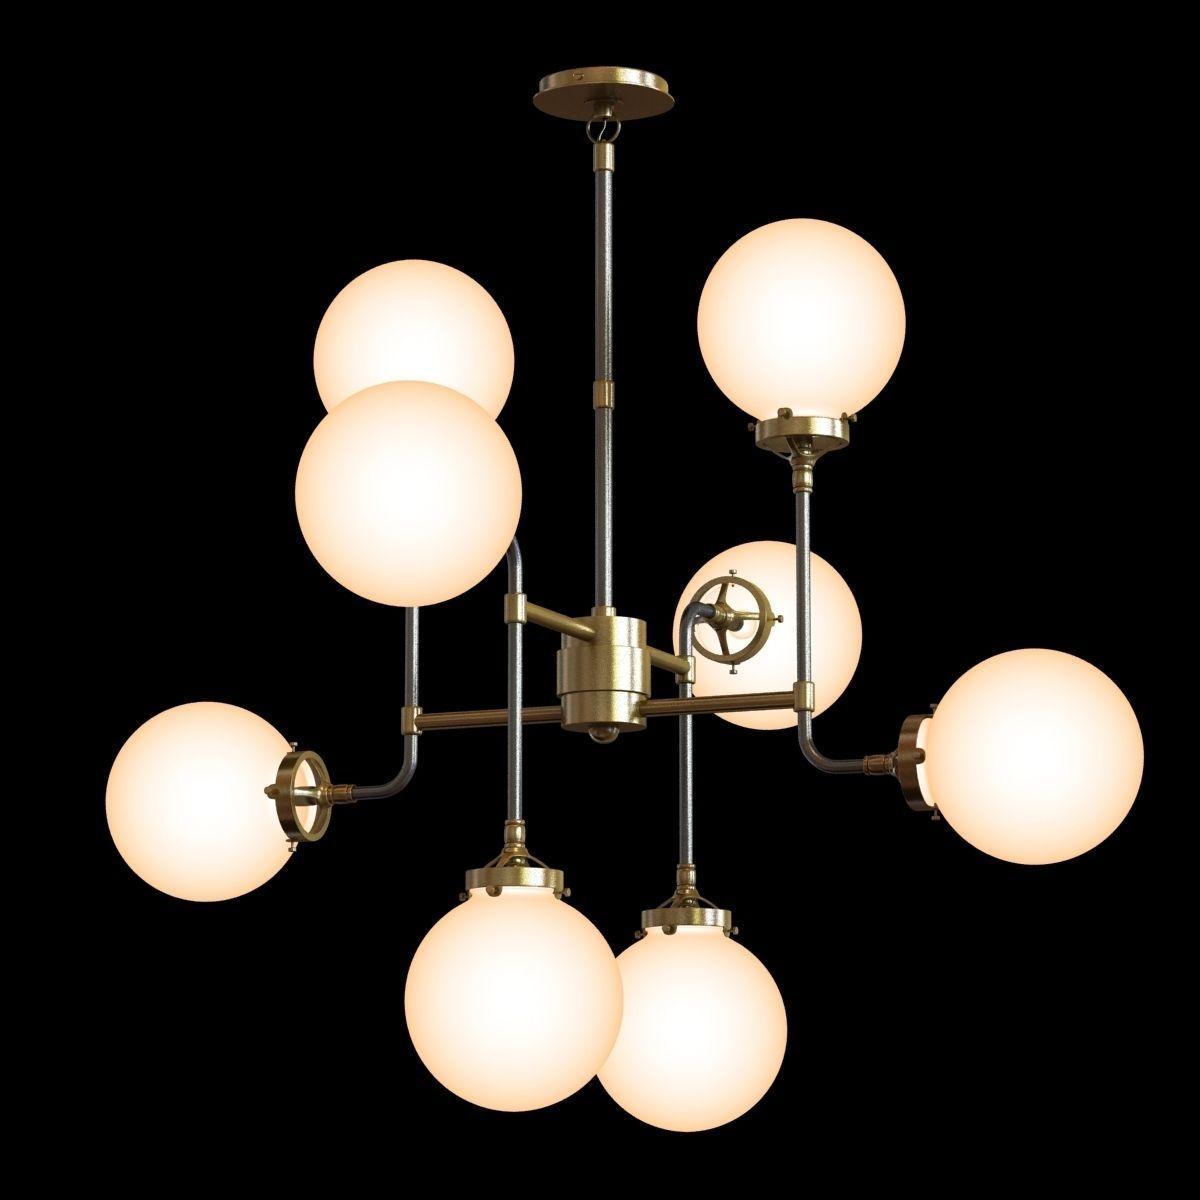 Restoration Hardware BISTRO GLOBE MILK GLASS 8-LIGHT CHANDELIER 3D ...